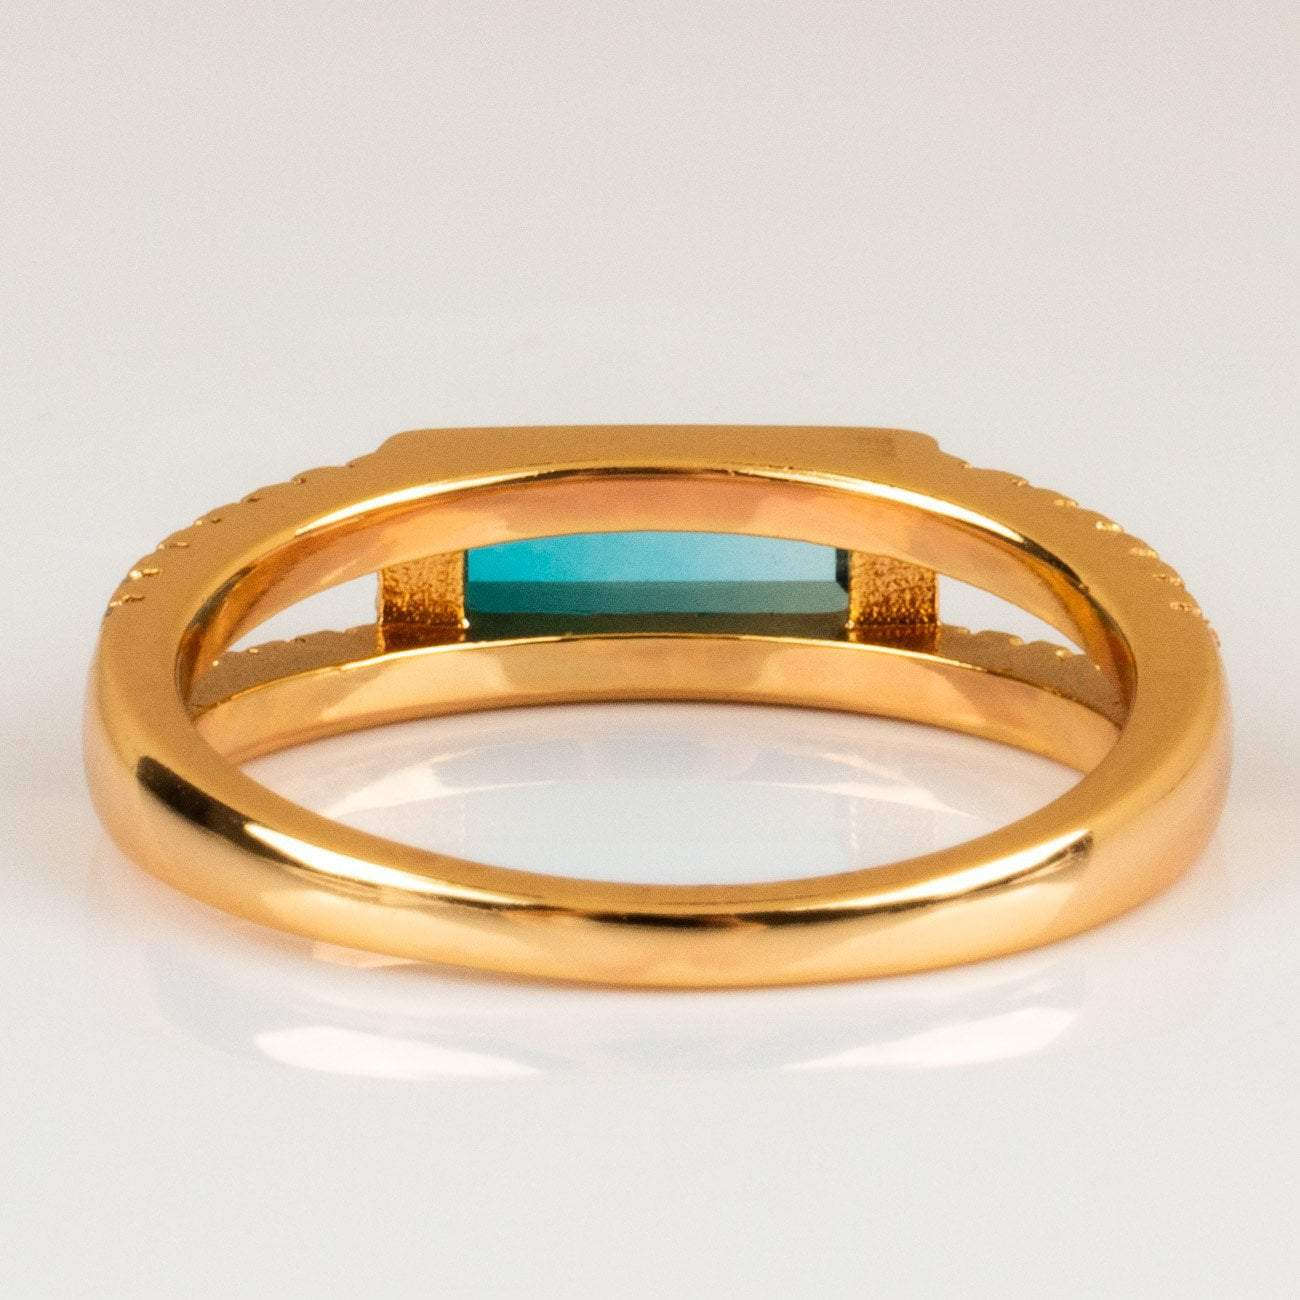 Baguette Ring with Blue Tourmaline